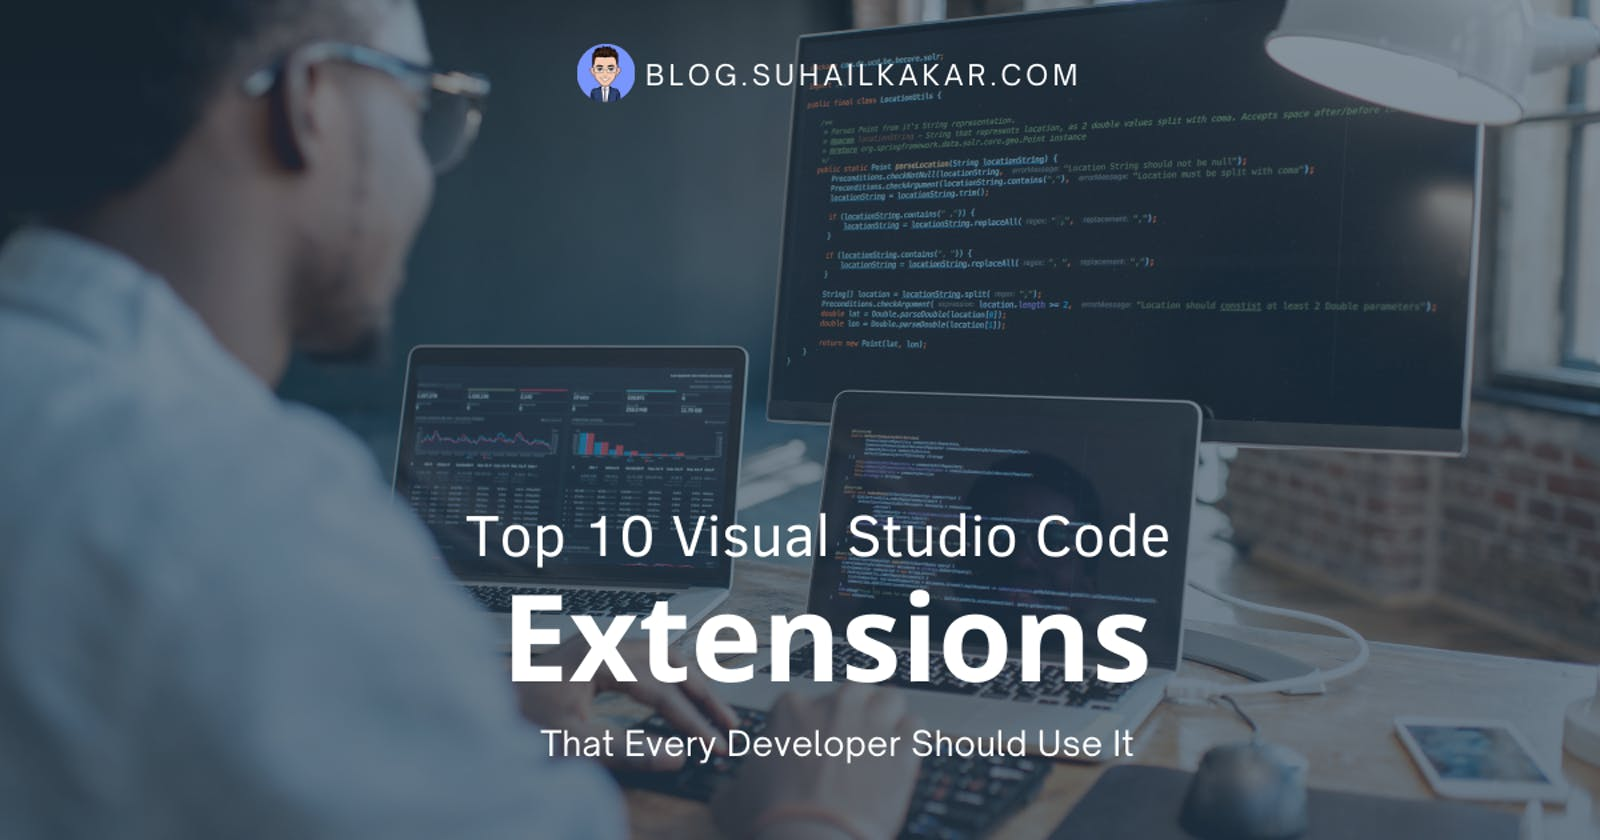 Top 10 Visual Studio Code Extensions That Every Developer Should Use It